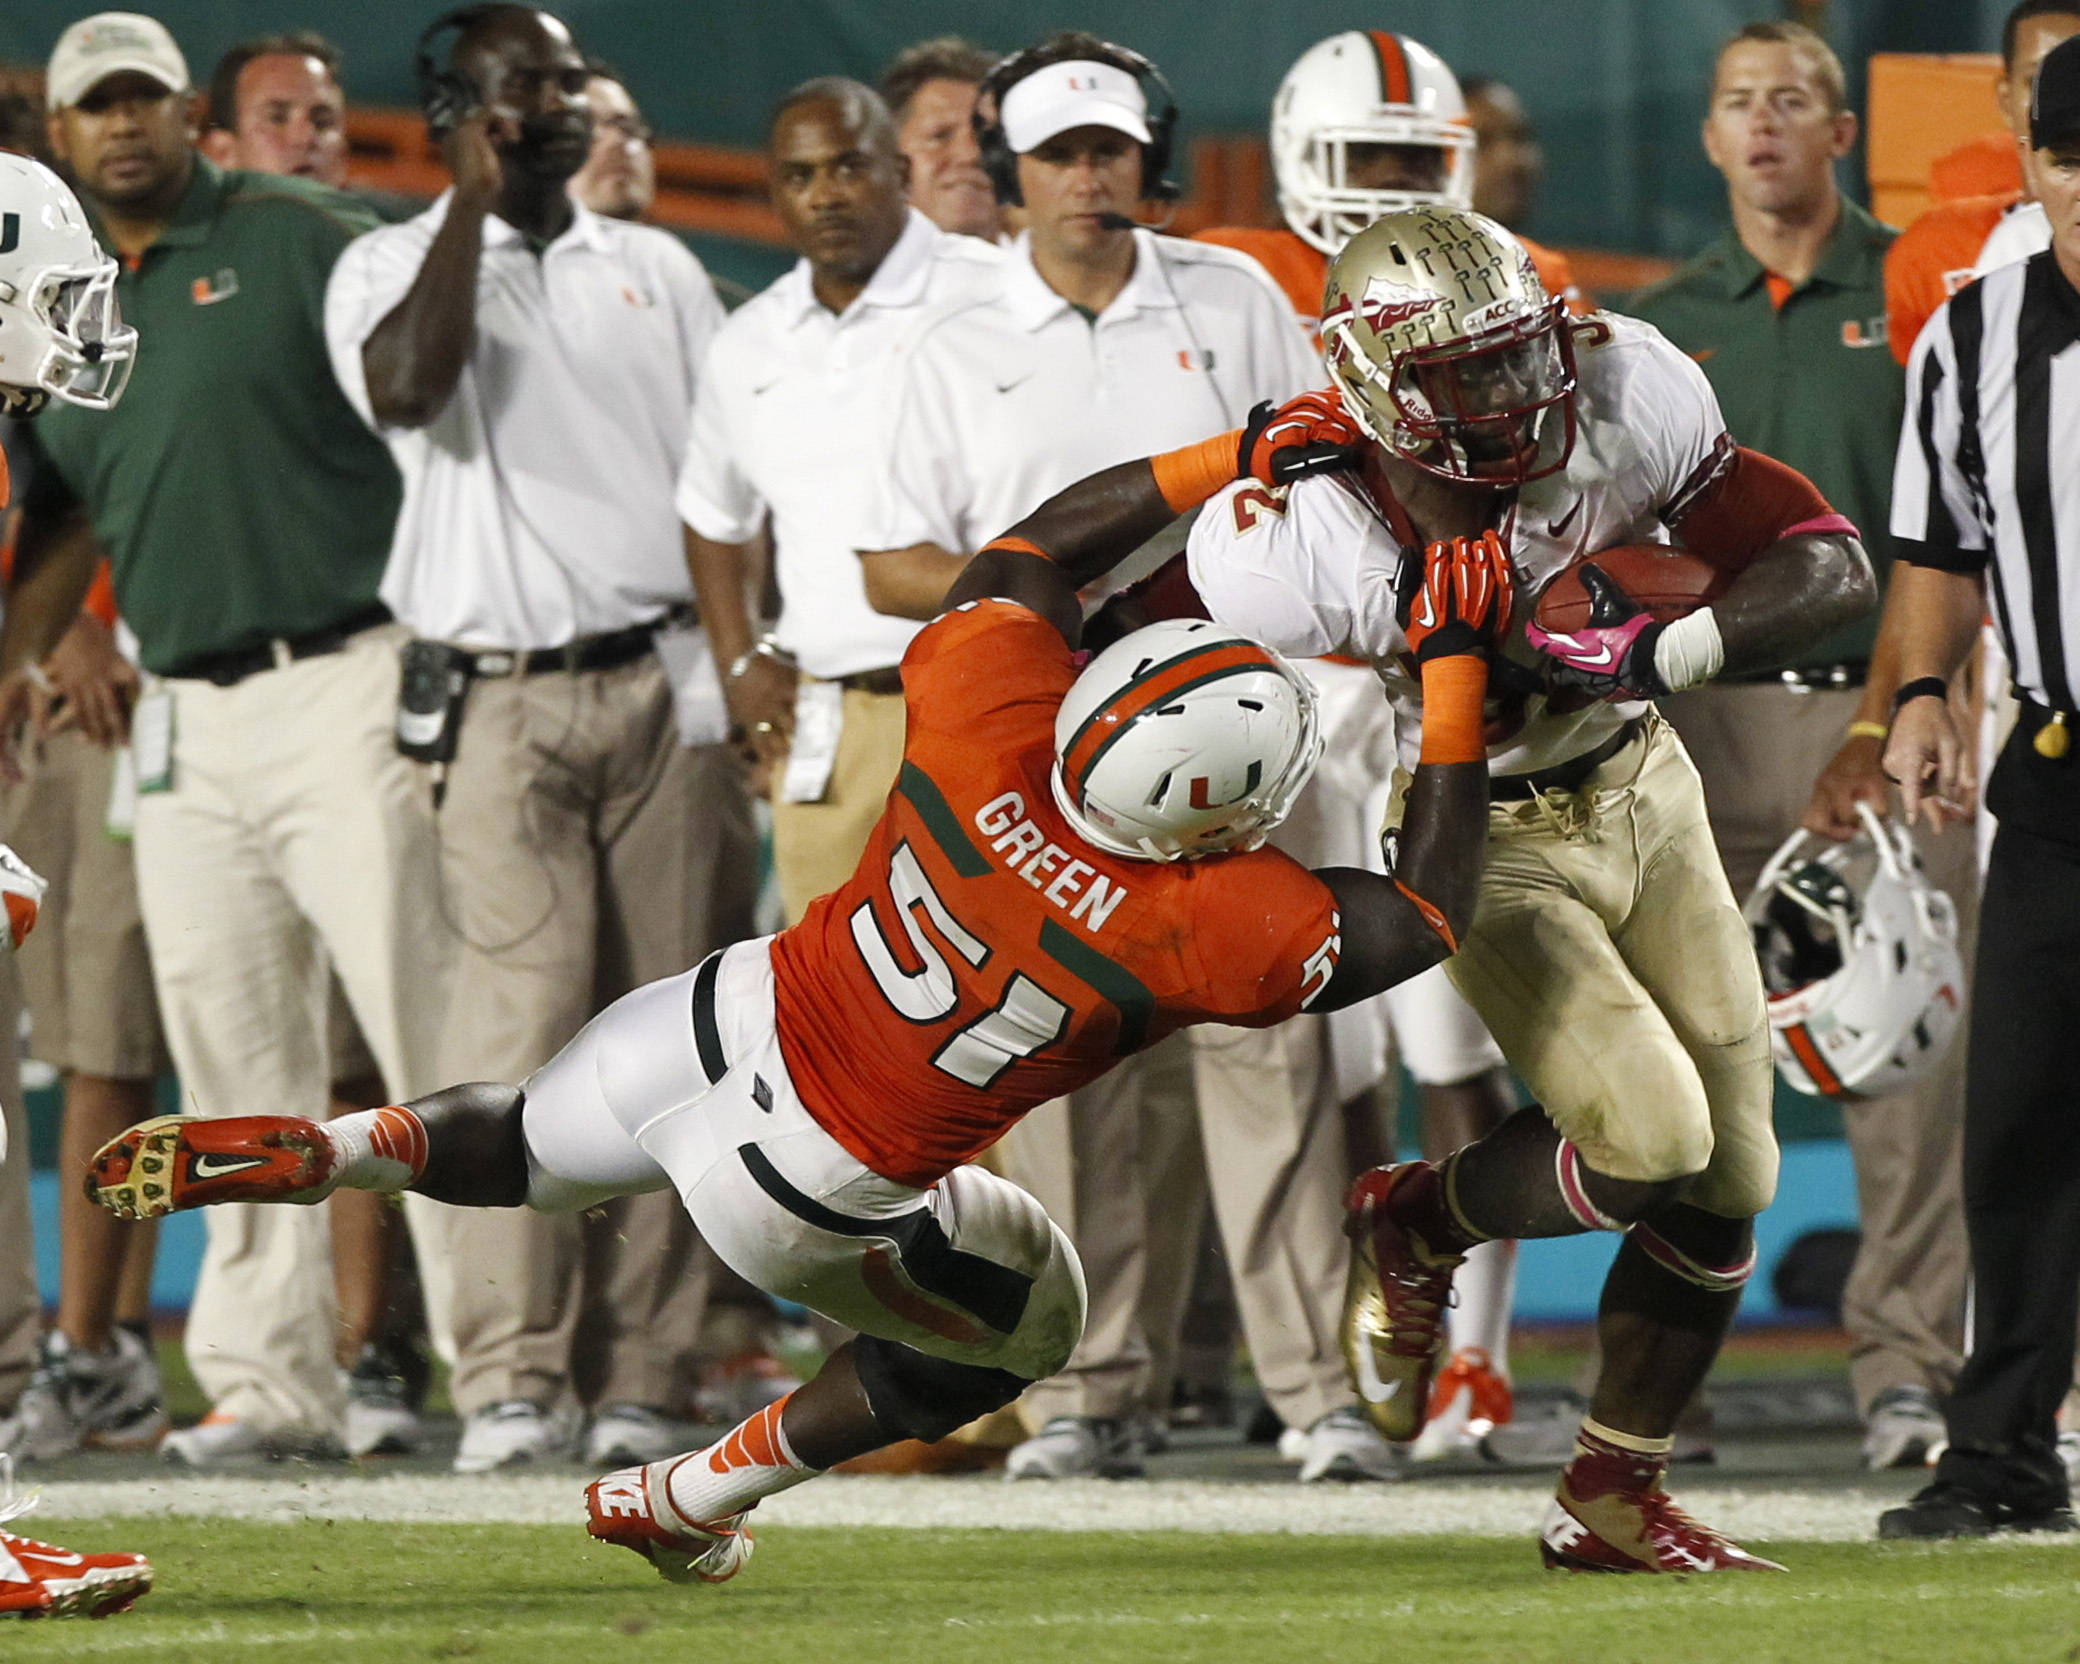 Florida State's James Wilder Jr., right, is tackled by Miami's Shayon Green (51) during the first half of an NCAA college football game in Miami, Saturday, Oct. 20, 2012. (AP Photo/Alan Diaz)